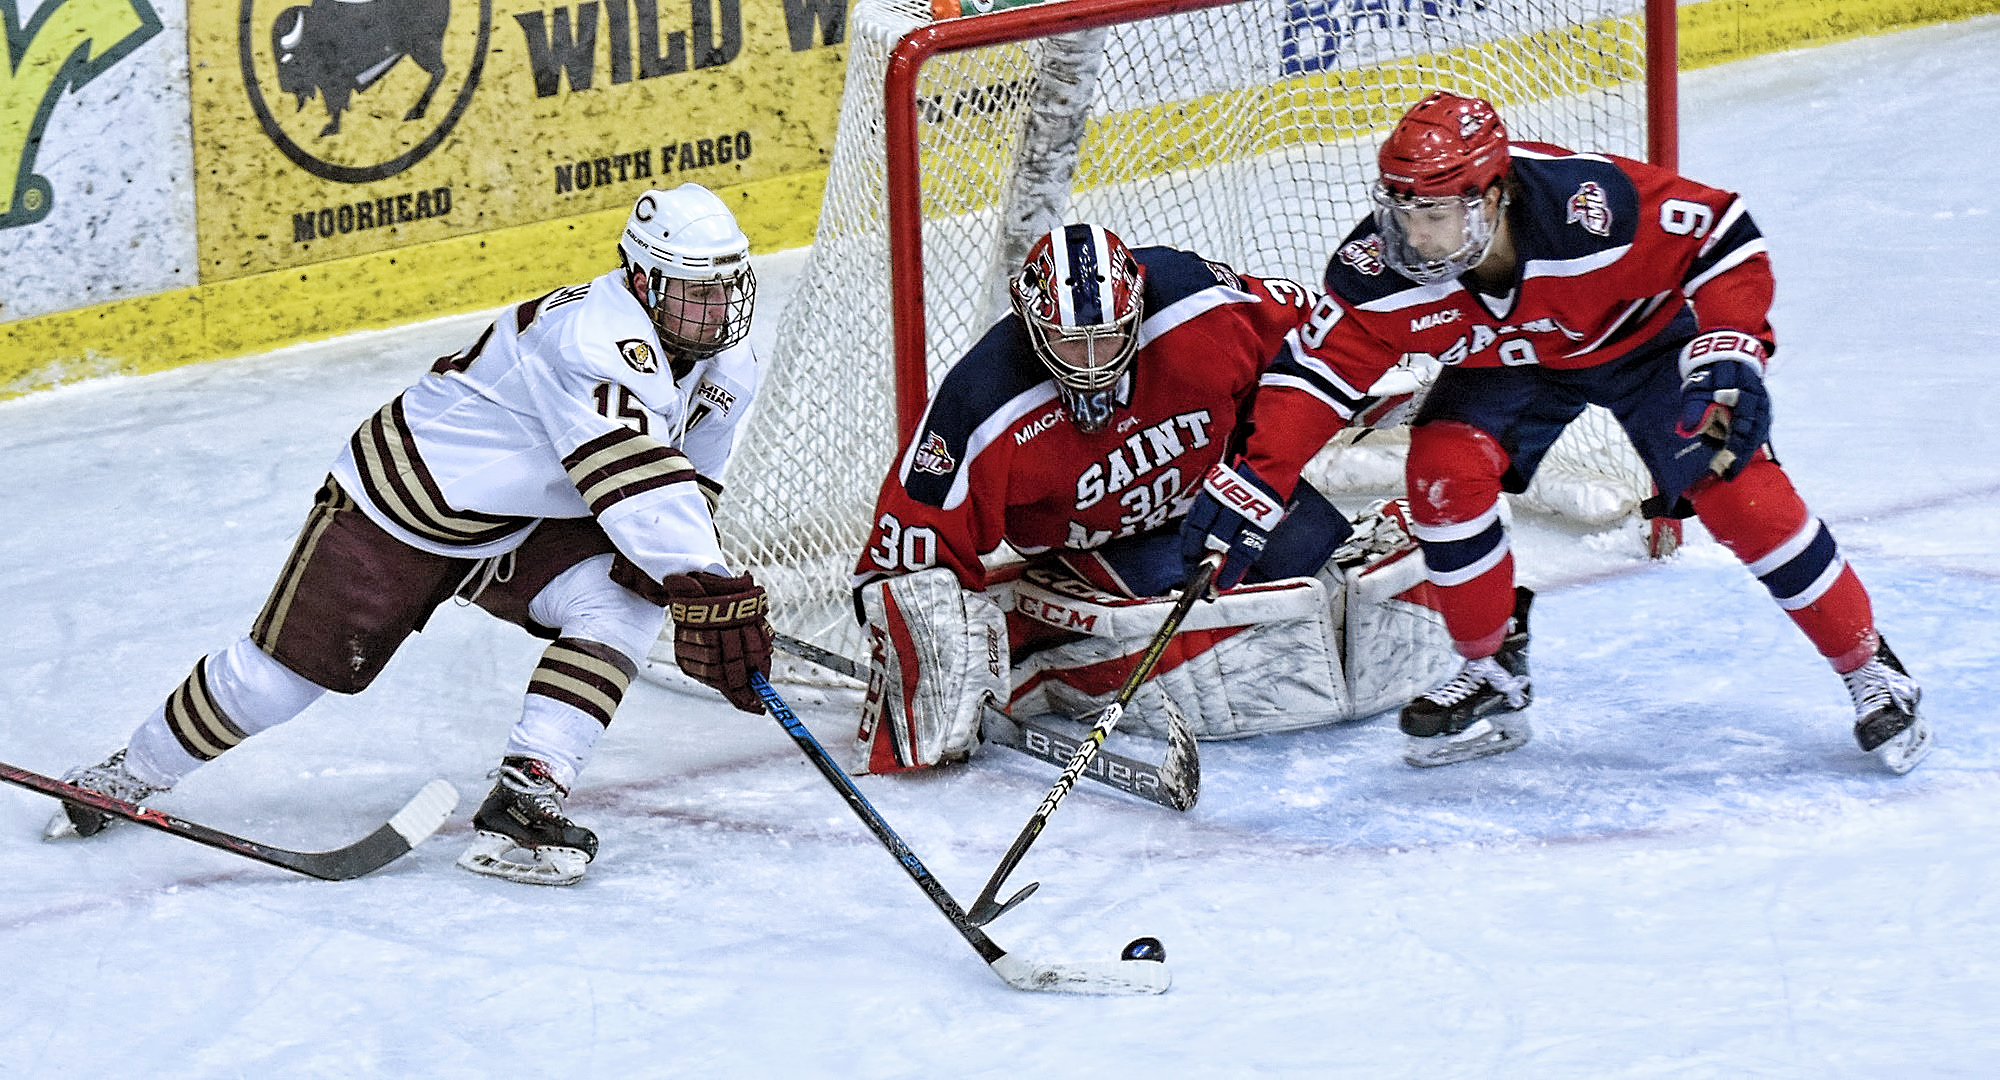 Mario Bianchi works the puck around the St. Mary's goal to set up the Cobbers' second goal in their MIAC quarterfinal game against the Cardinals.